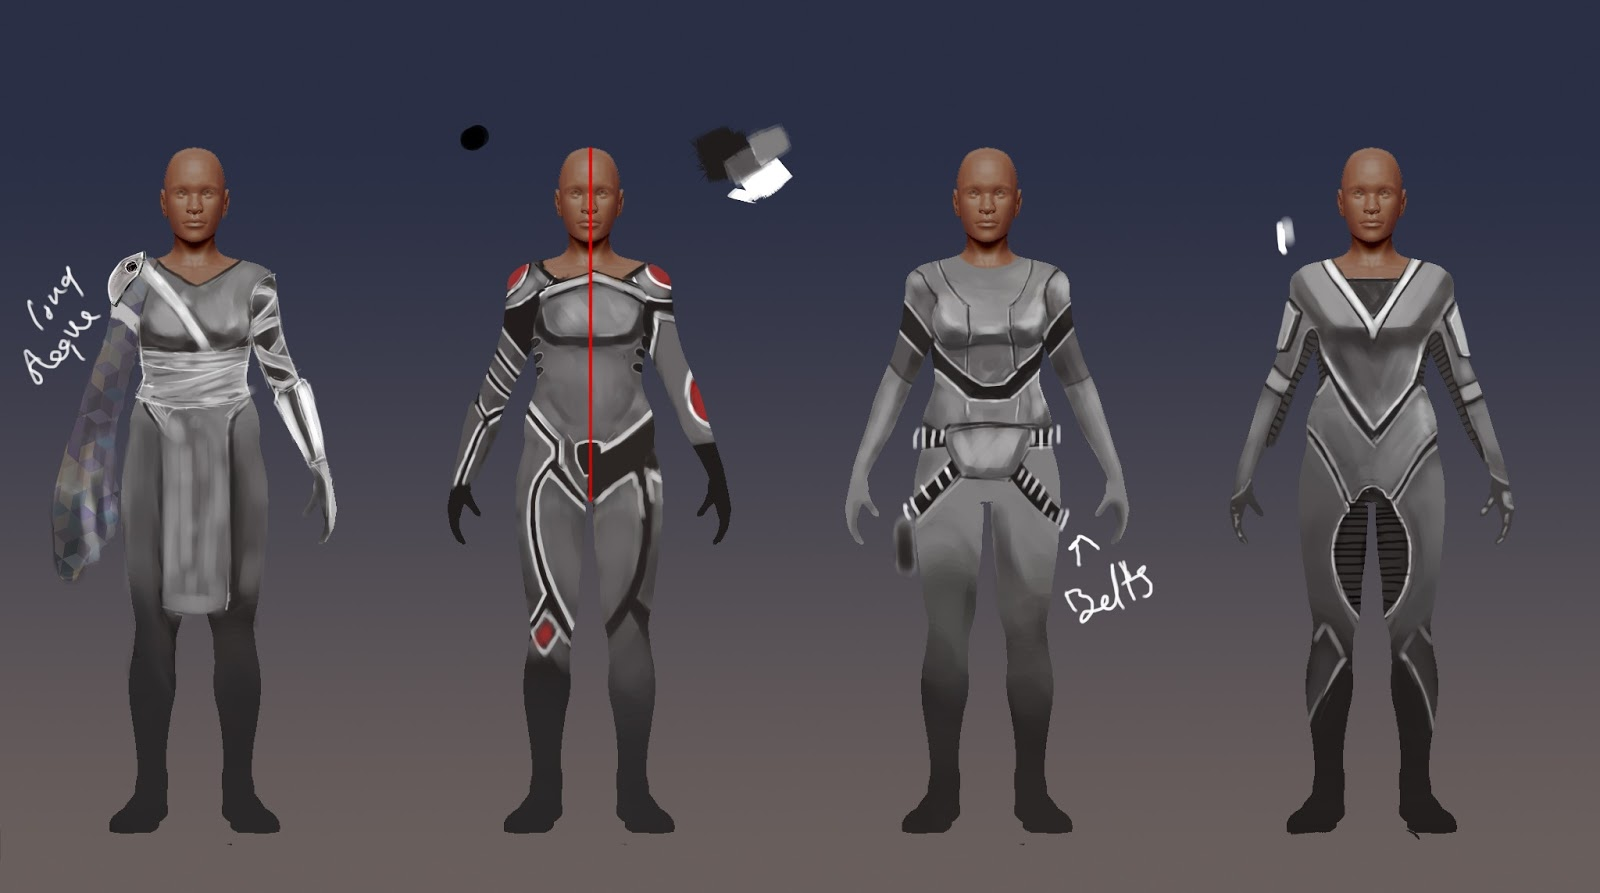 CyberPunk character designs for 3 3d characters.